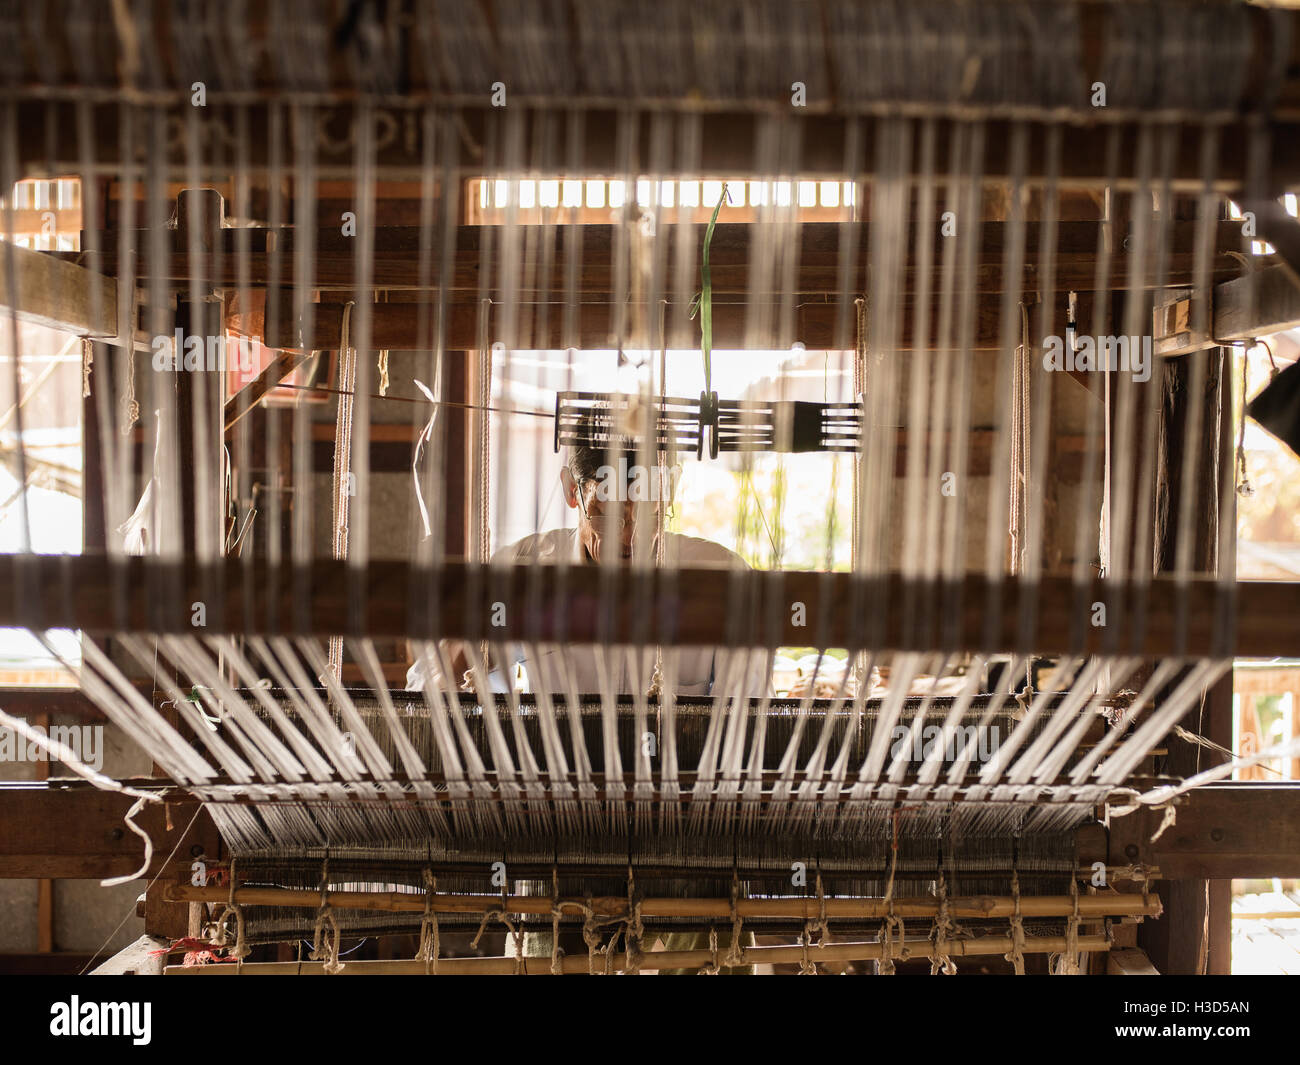 A silk weaver in Inle Lake, Myanmar - Stock Image